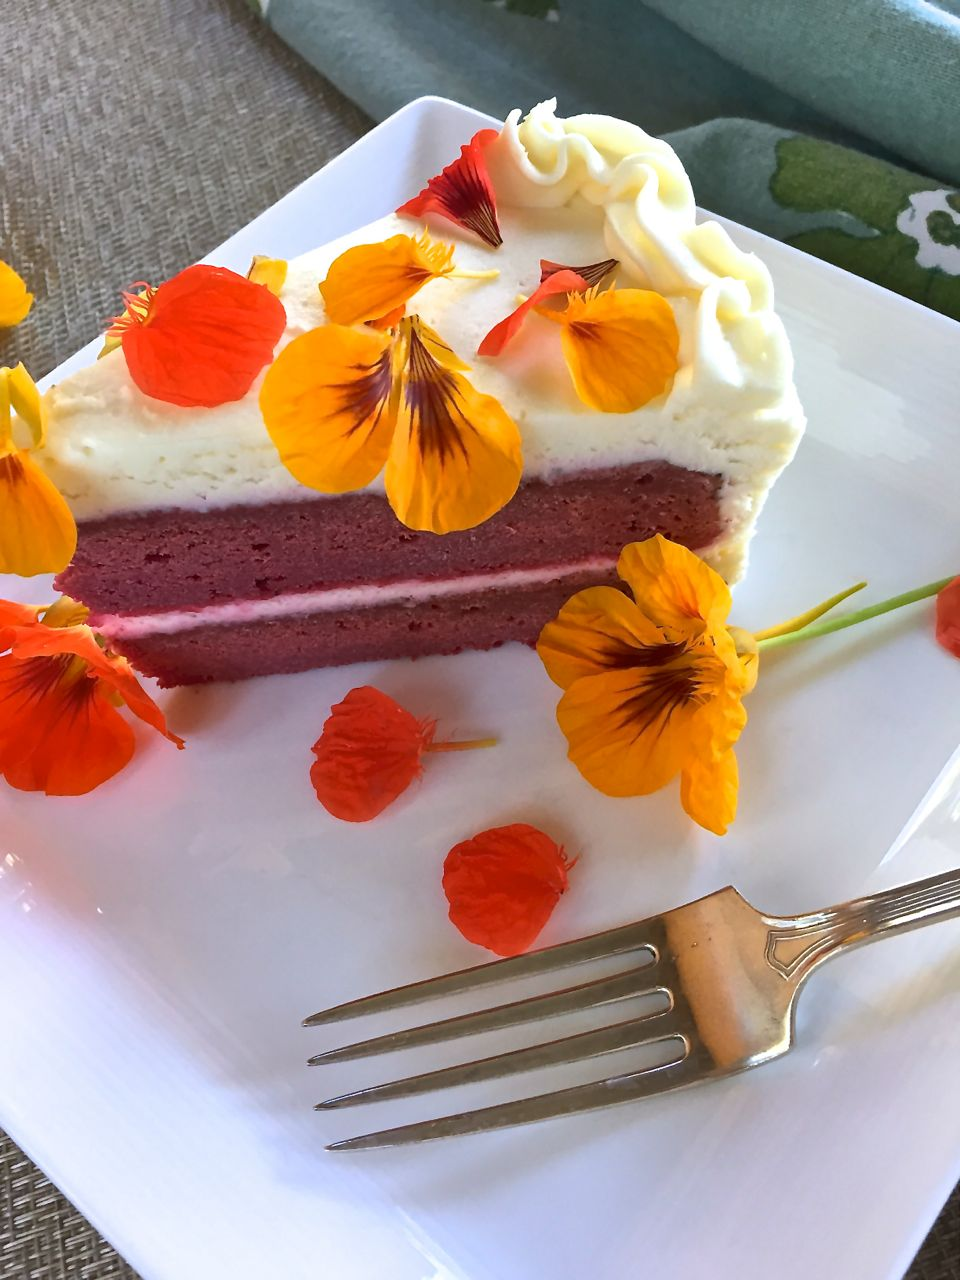 How To Make Red Velvet Cake Without Food Coloring